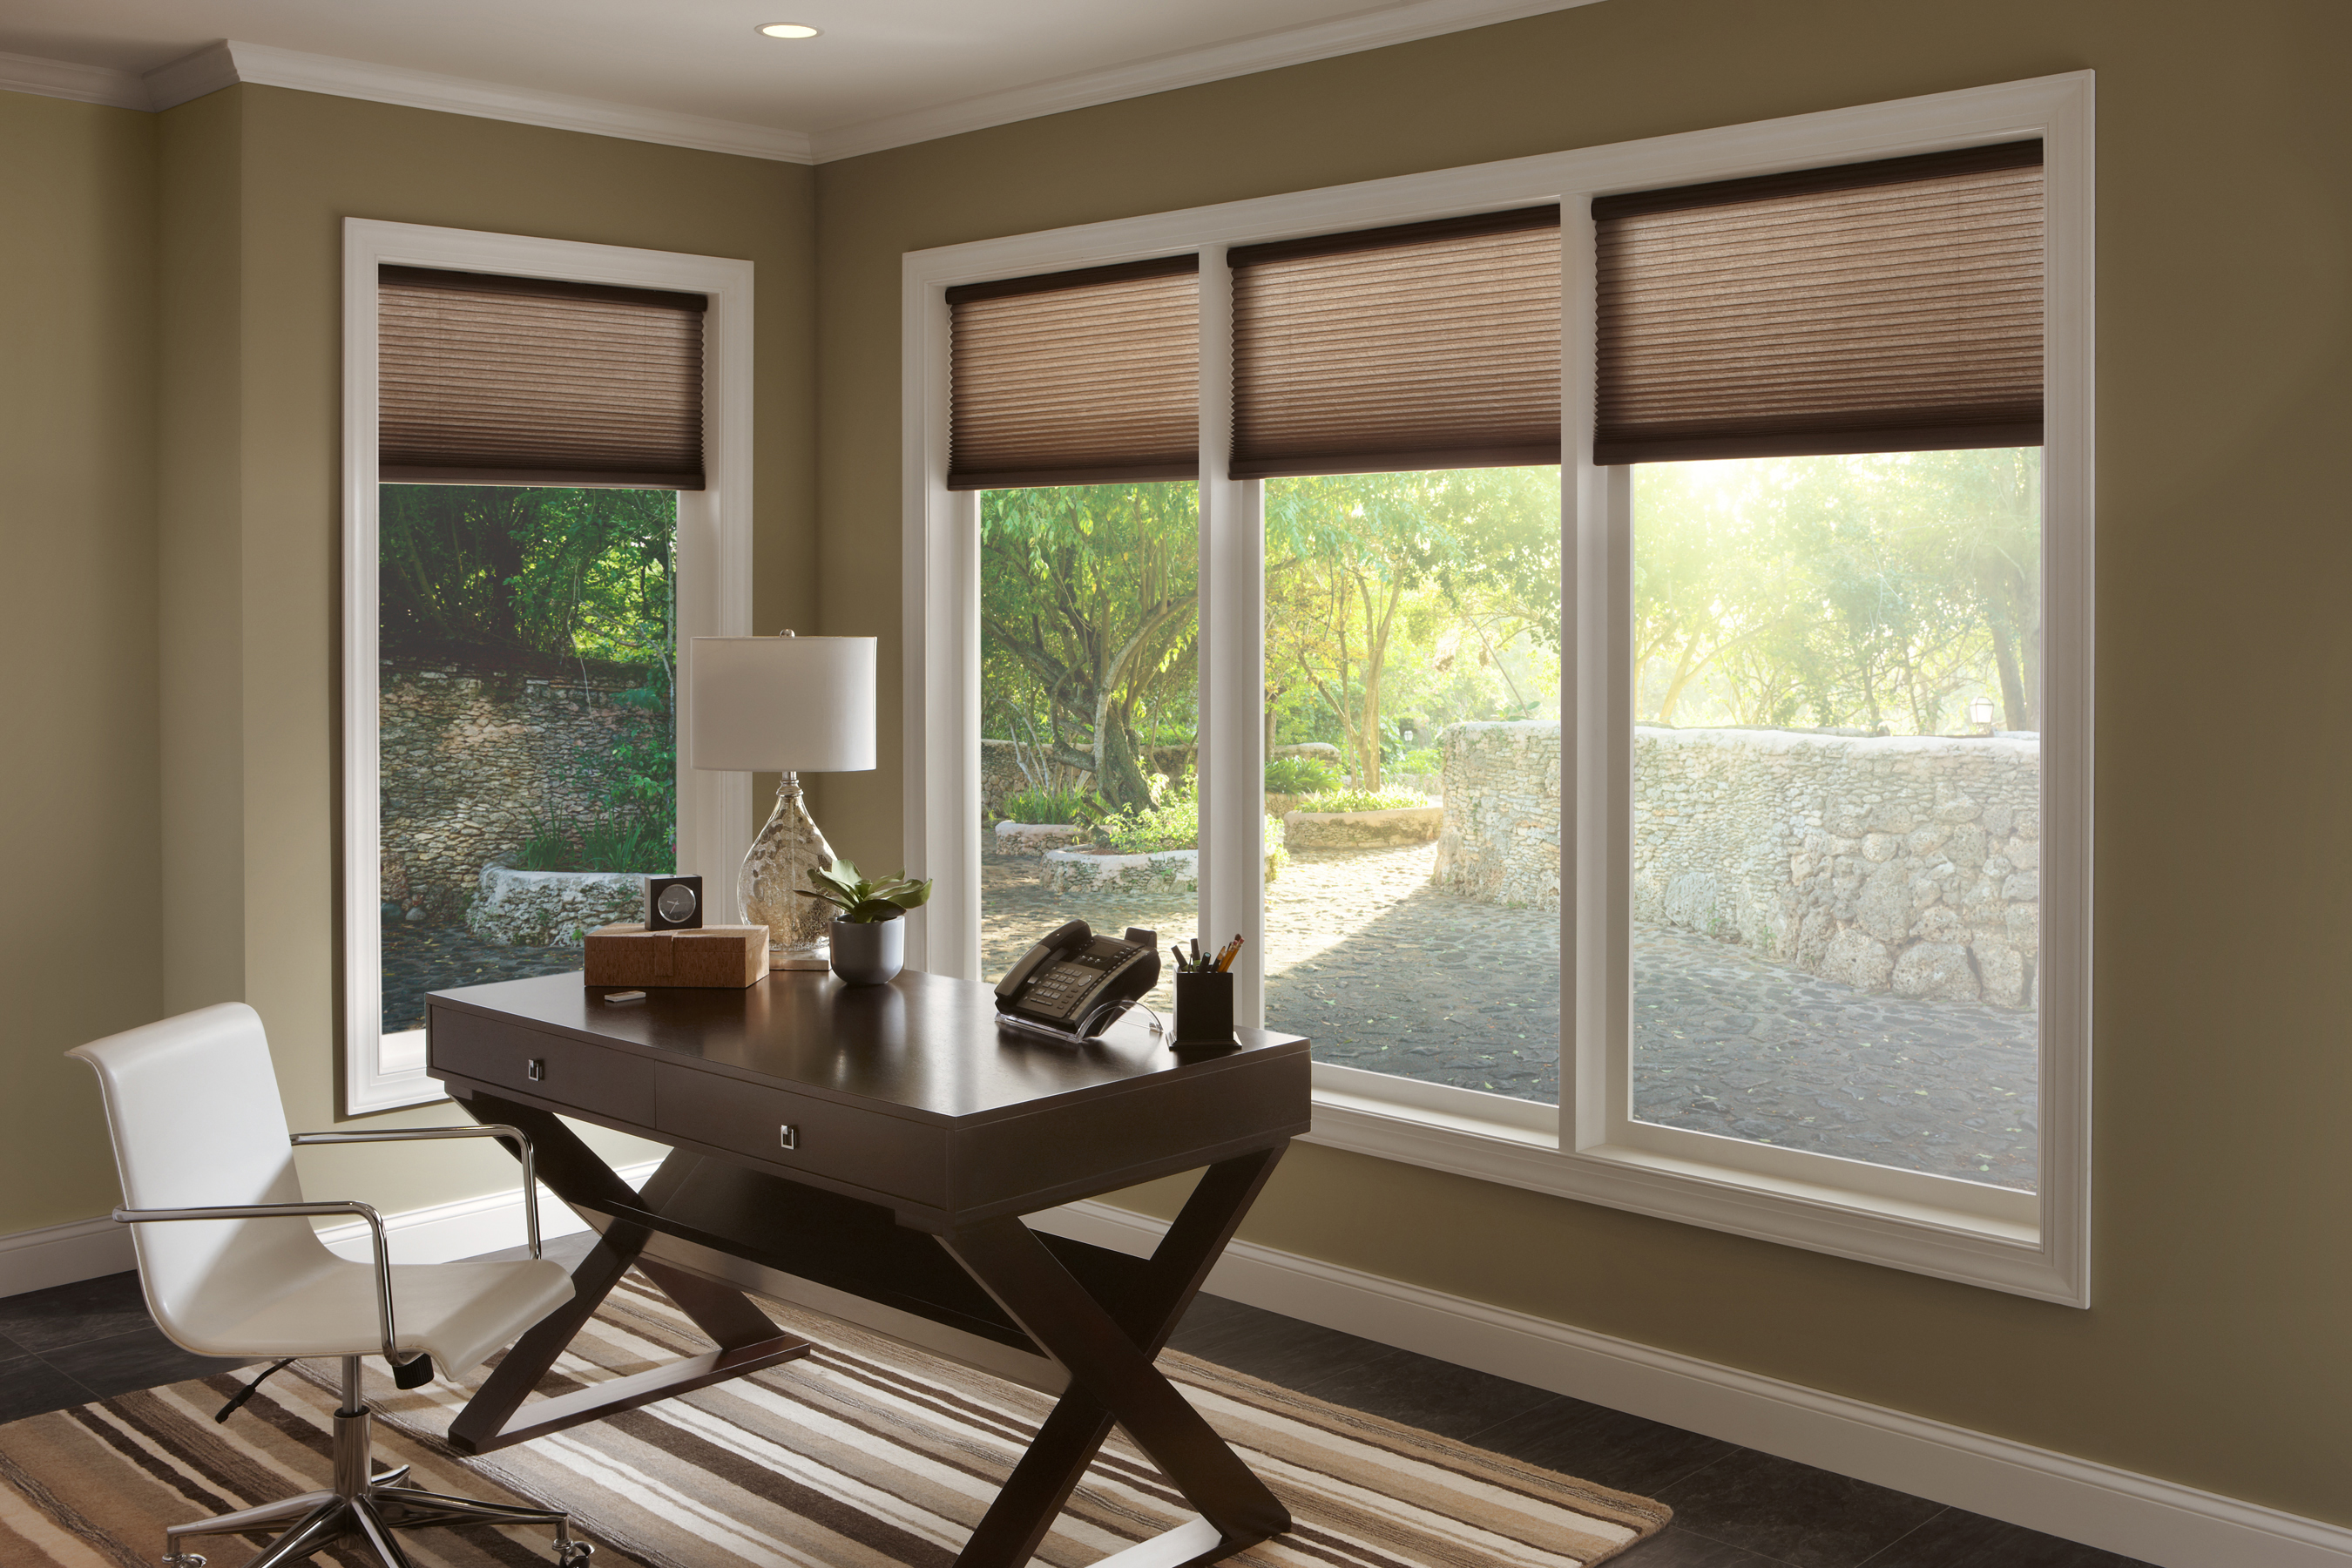 inc pm at blinds automated blog from shot screen smart home solutions pulse lutron